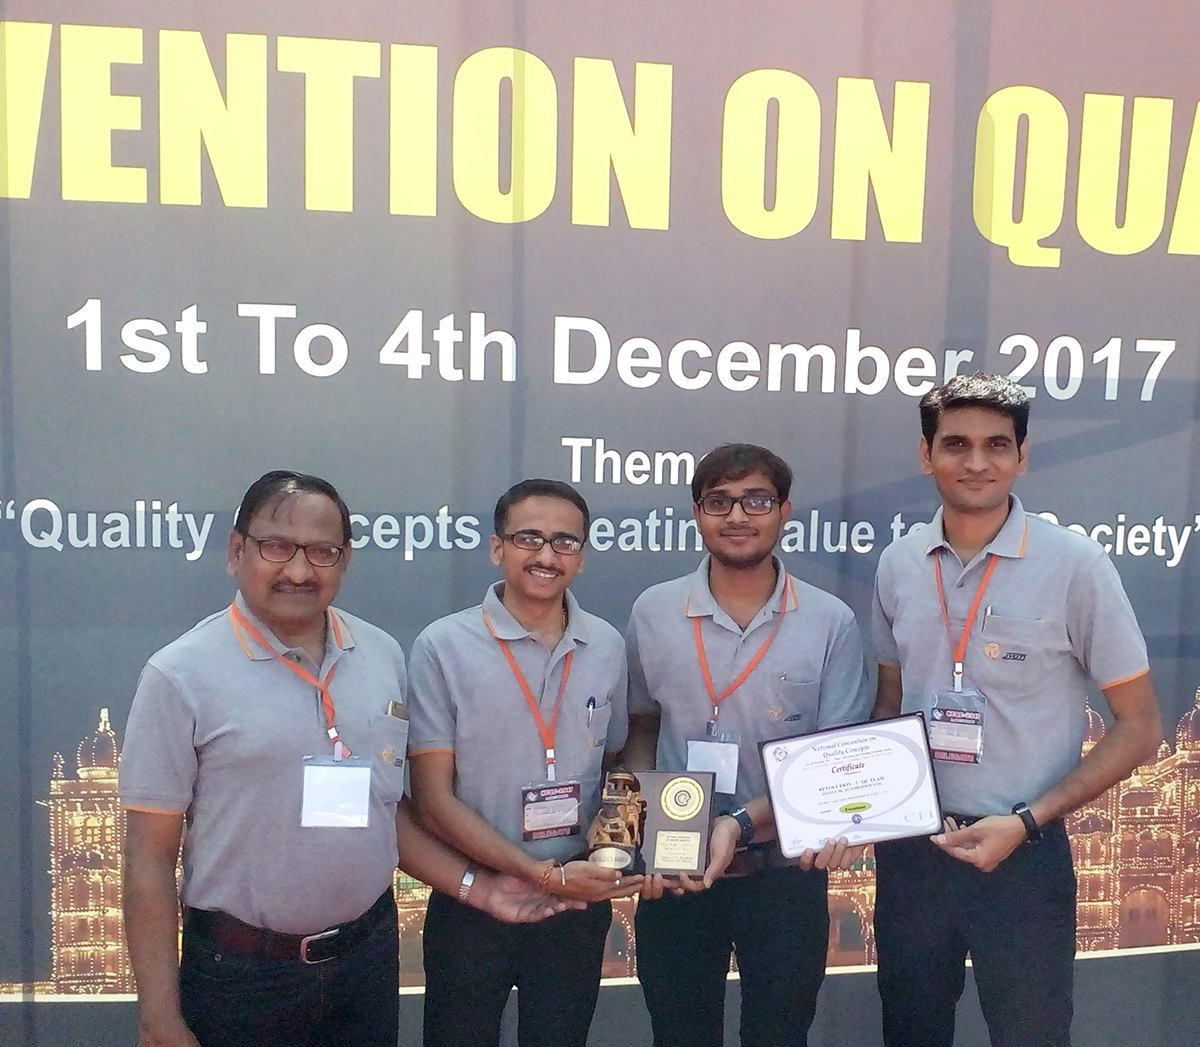 2nd-prize-at-national-convention-on-quality-concepts-held-at-Mysuru-karnataka-organized-by-quality-circle-forum-of-india